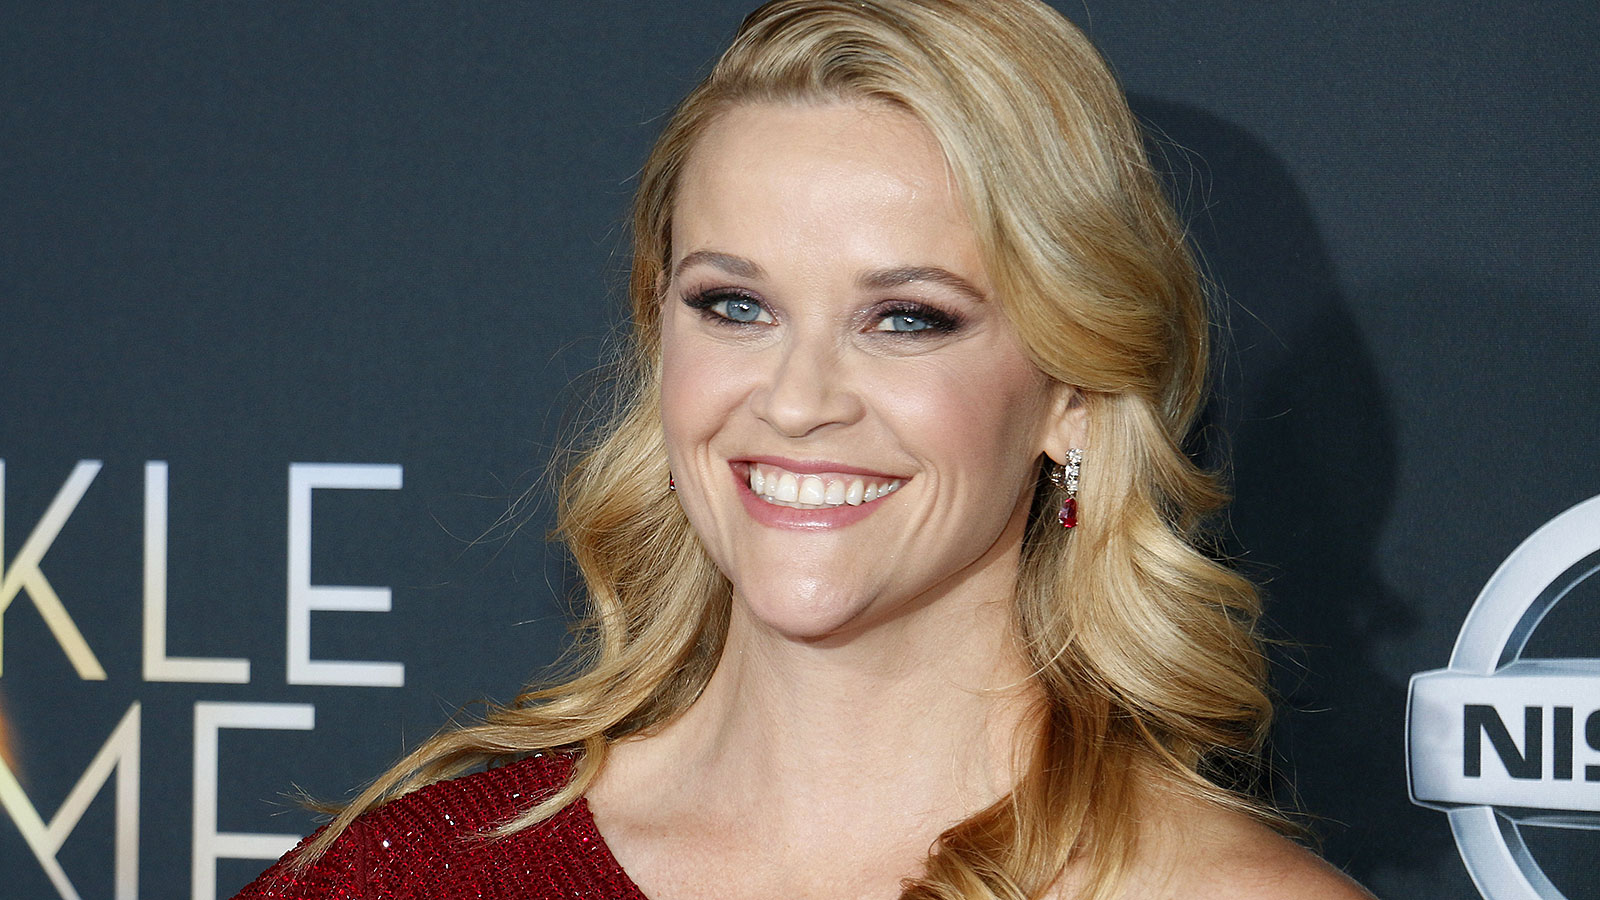 Reese Witherspoon is about to make you feel good about your greys and wrinkles